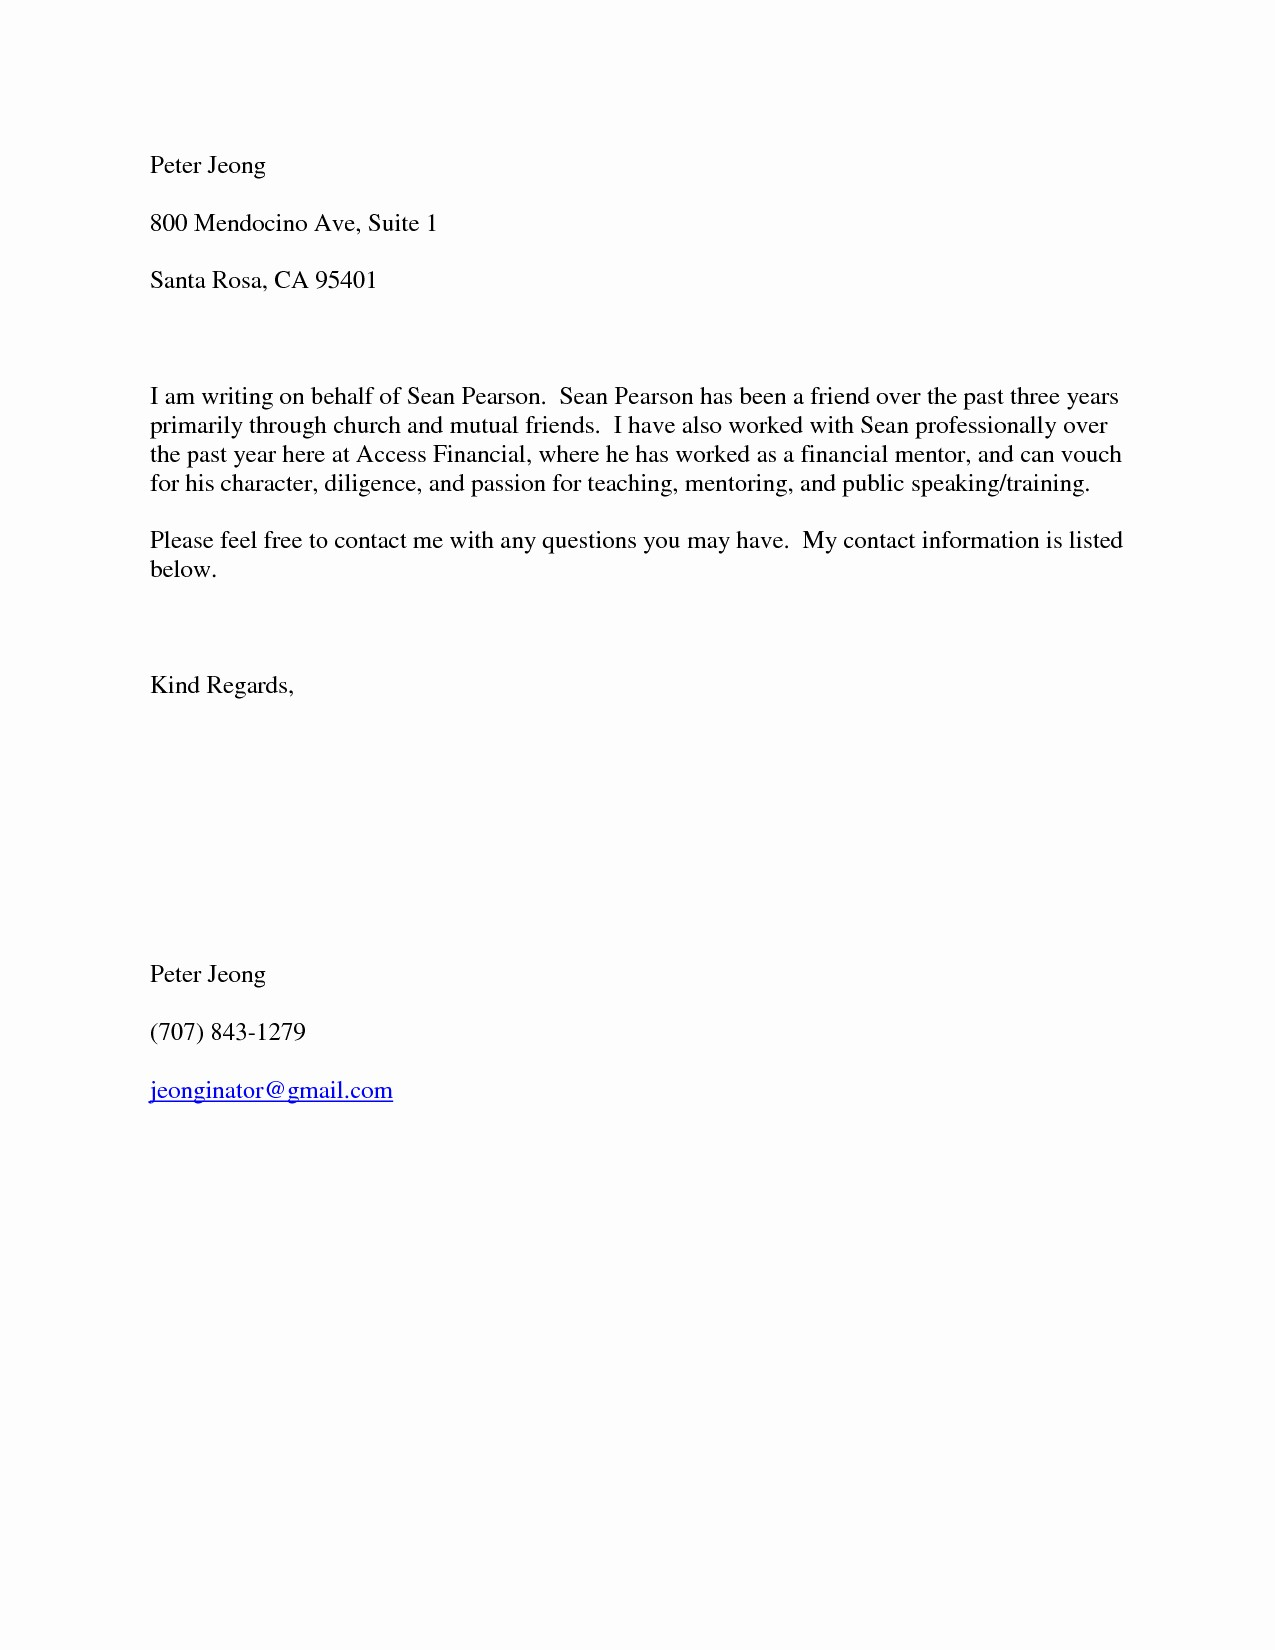 Free Character Reference Letter Template Beautiful Reference Letter for Friend Character Template Samples